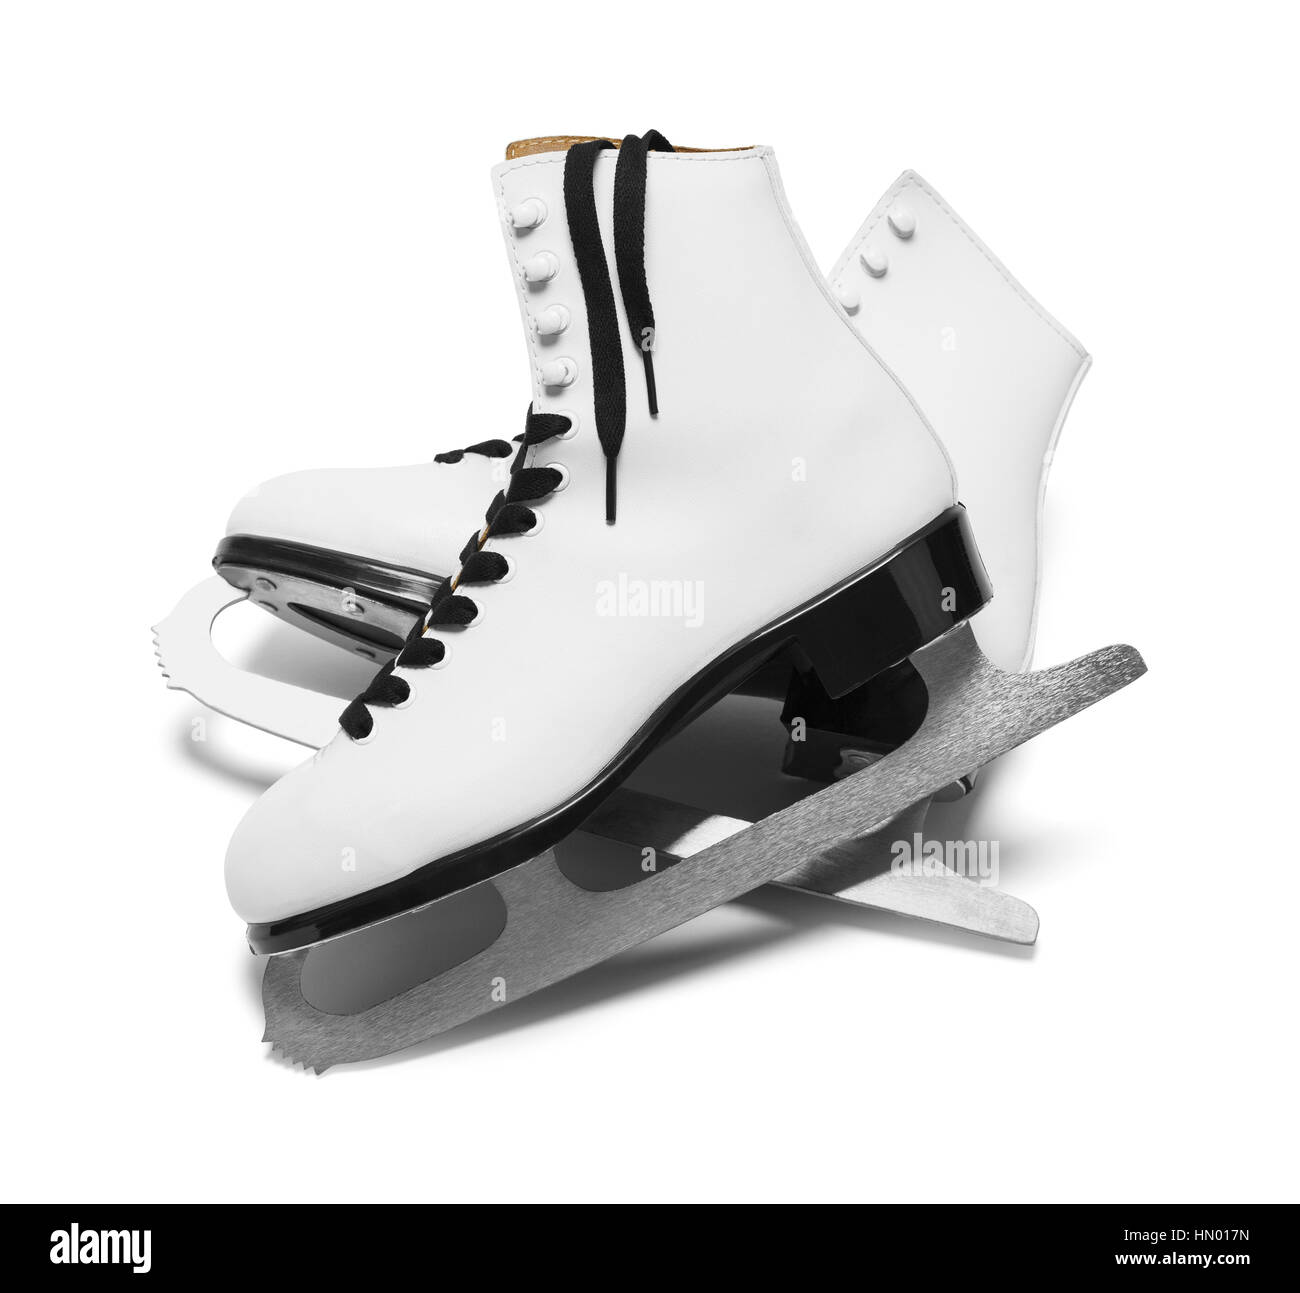 Two Ice Skates with Black Laces Isolated on White Background. - Stock Image